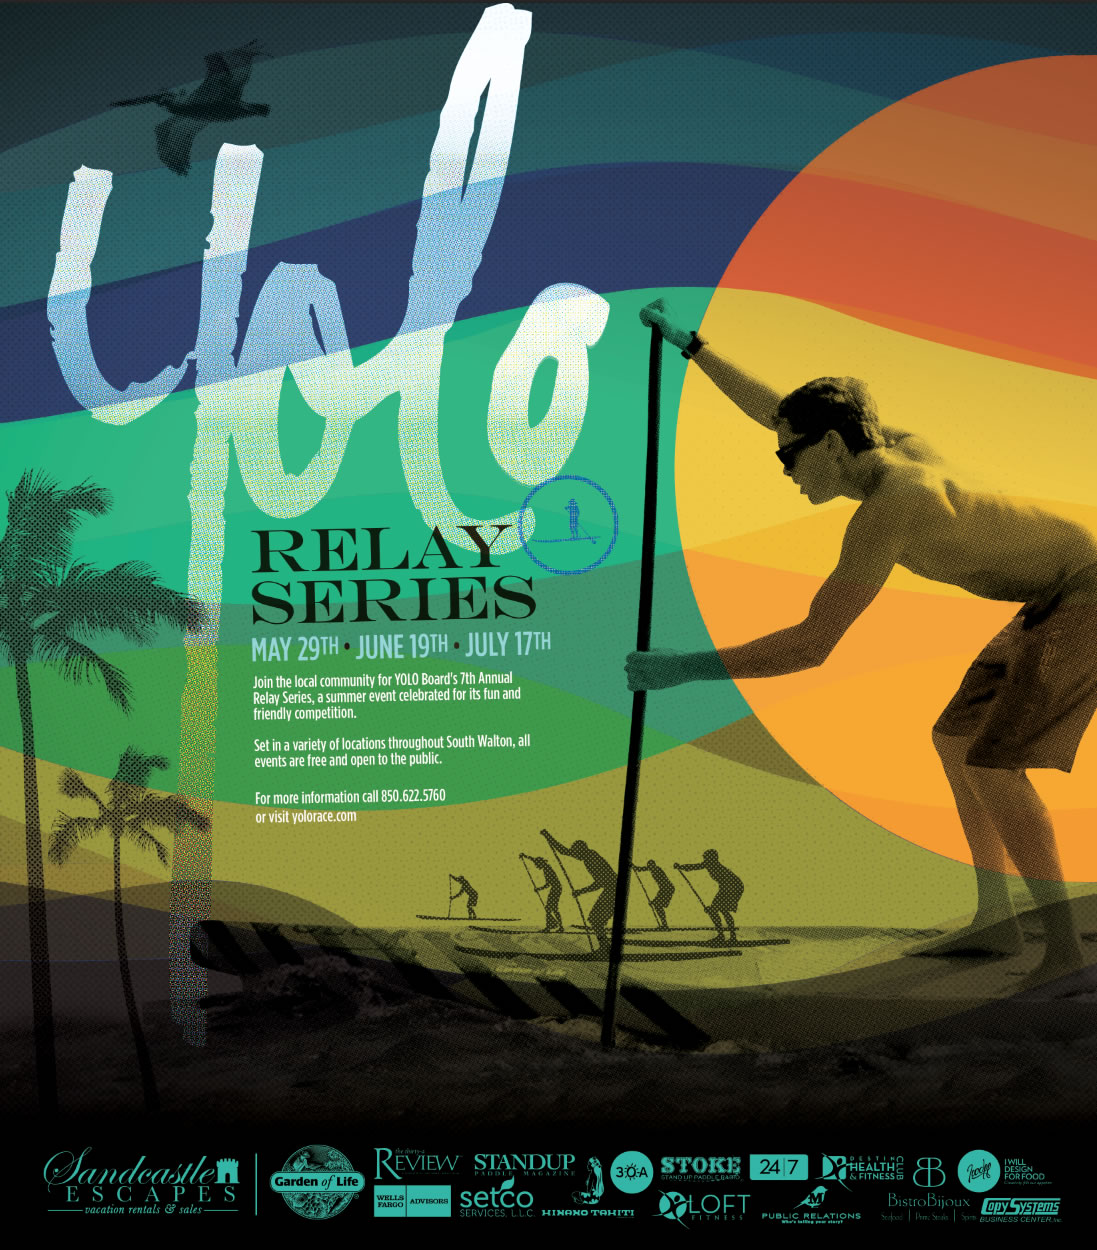 30A South Walton 2014 Relay Series Poster 7th Annual YOLO Board Relay Series Starts in WaterColor on May 29th